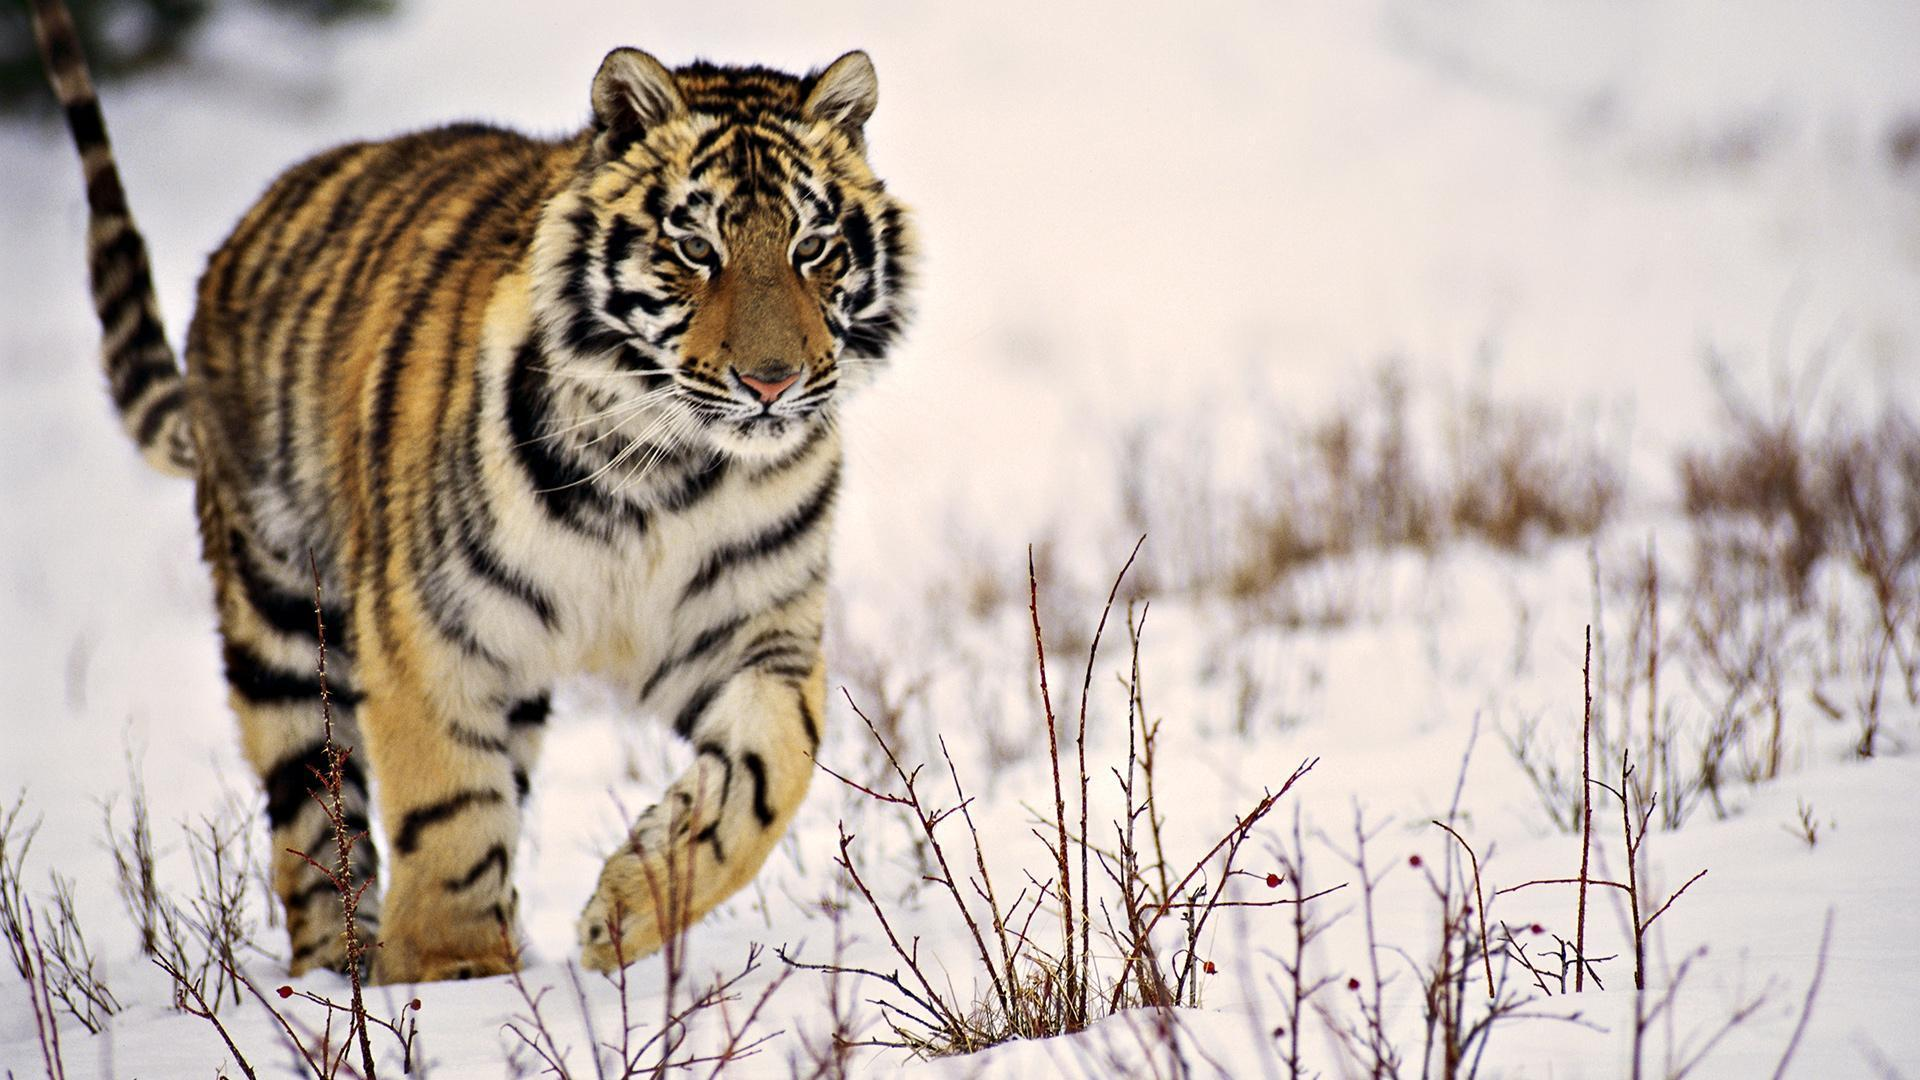 siberian tiger wallpapers - wallpaper cave